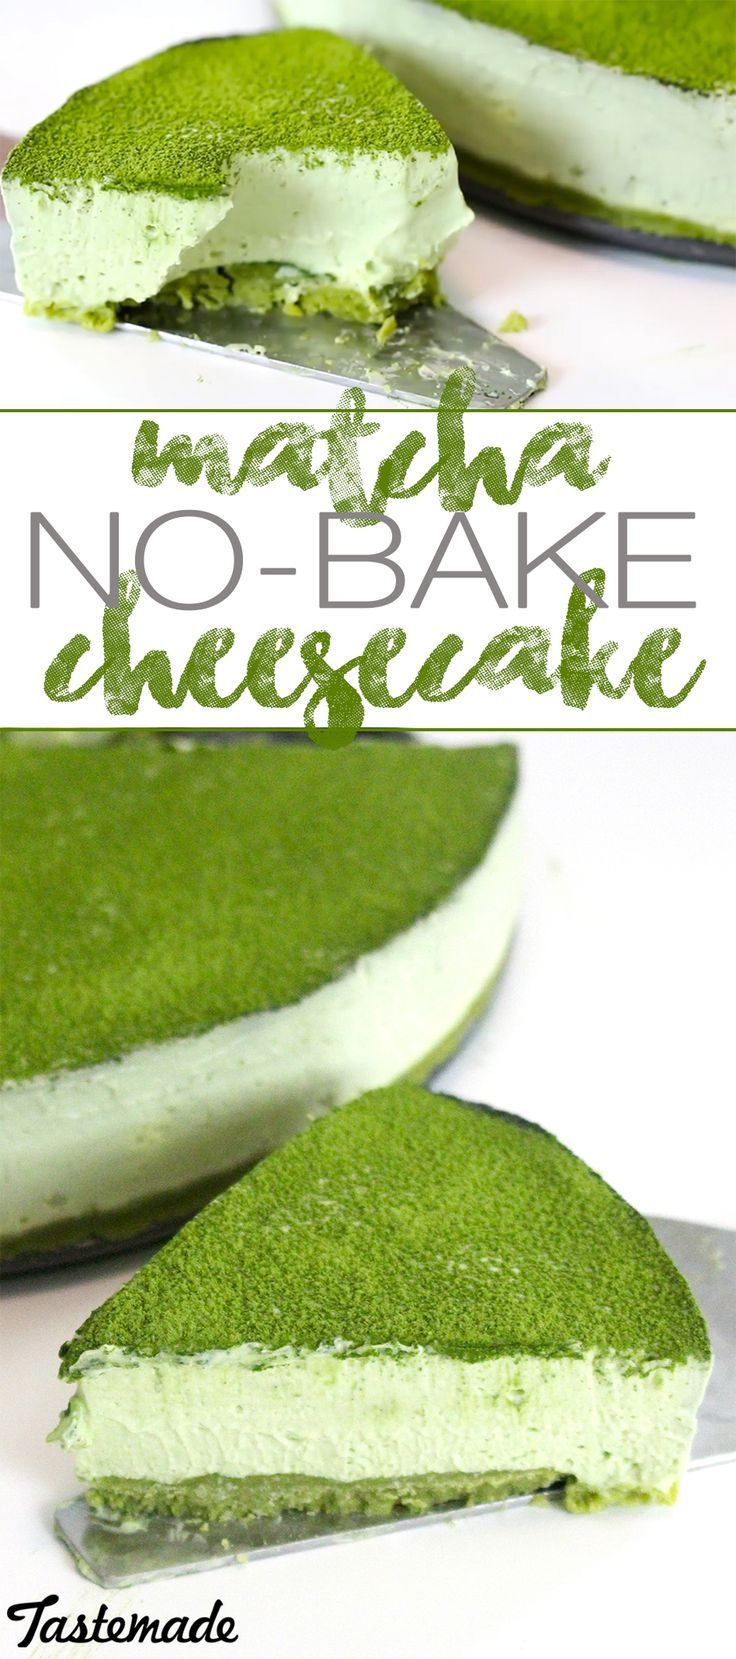 Loaded with green tea goodness, this creamy cheesecake doesn't even need an oven!